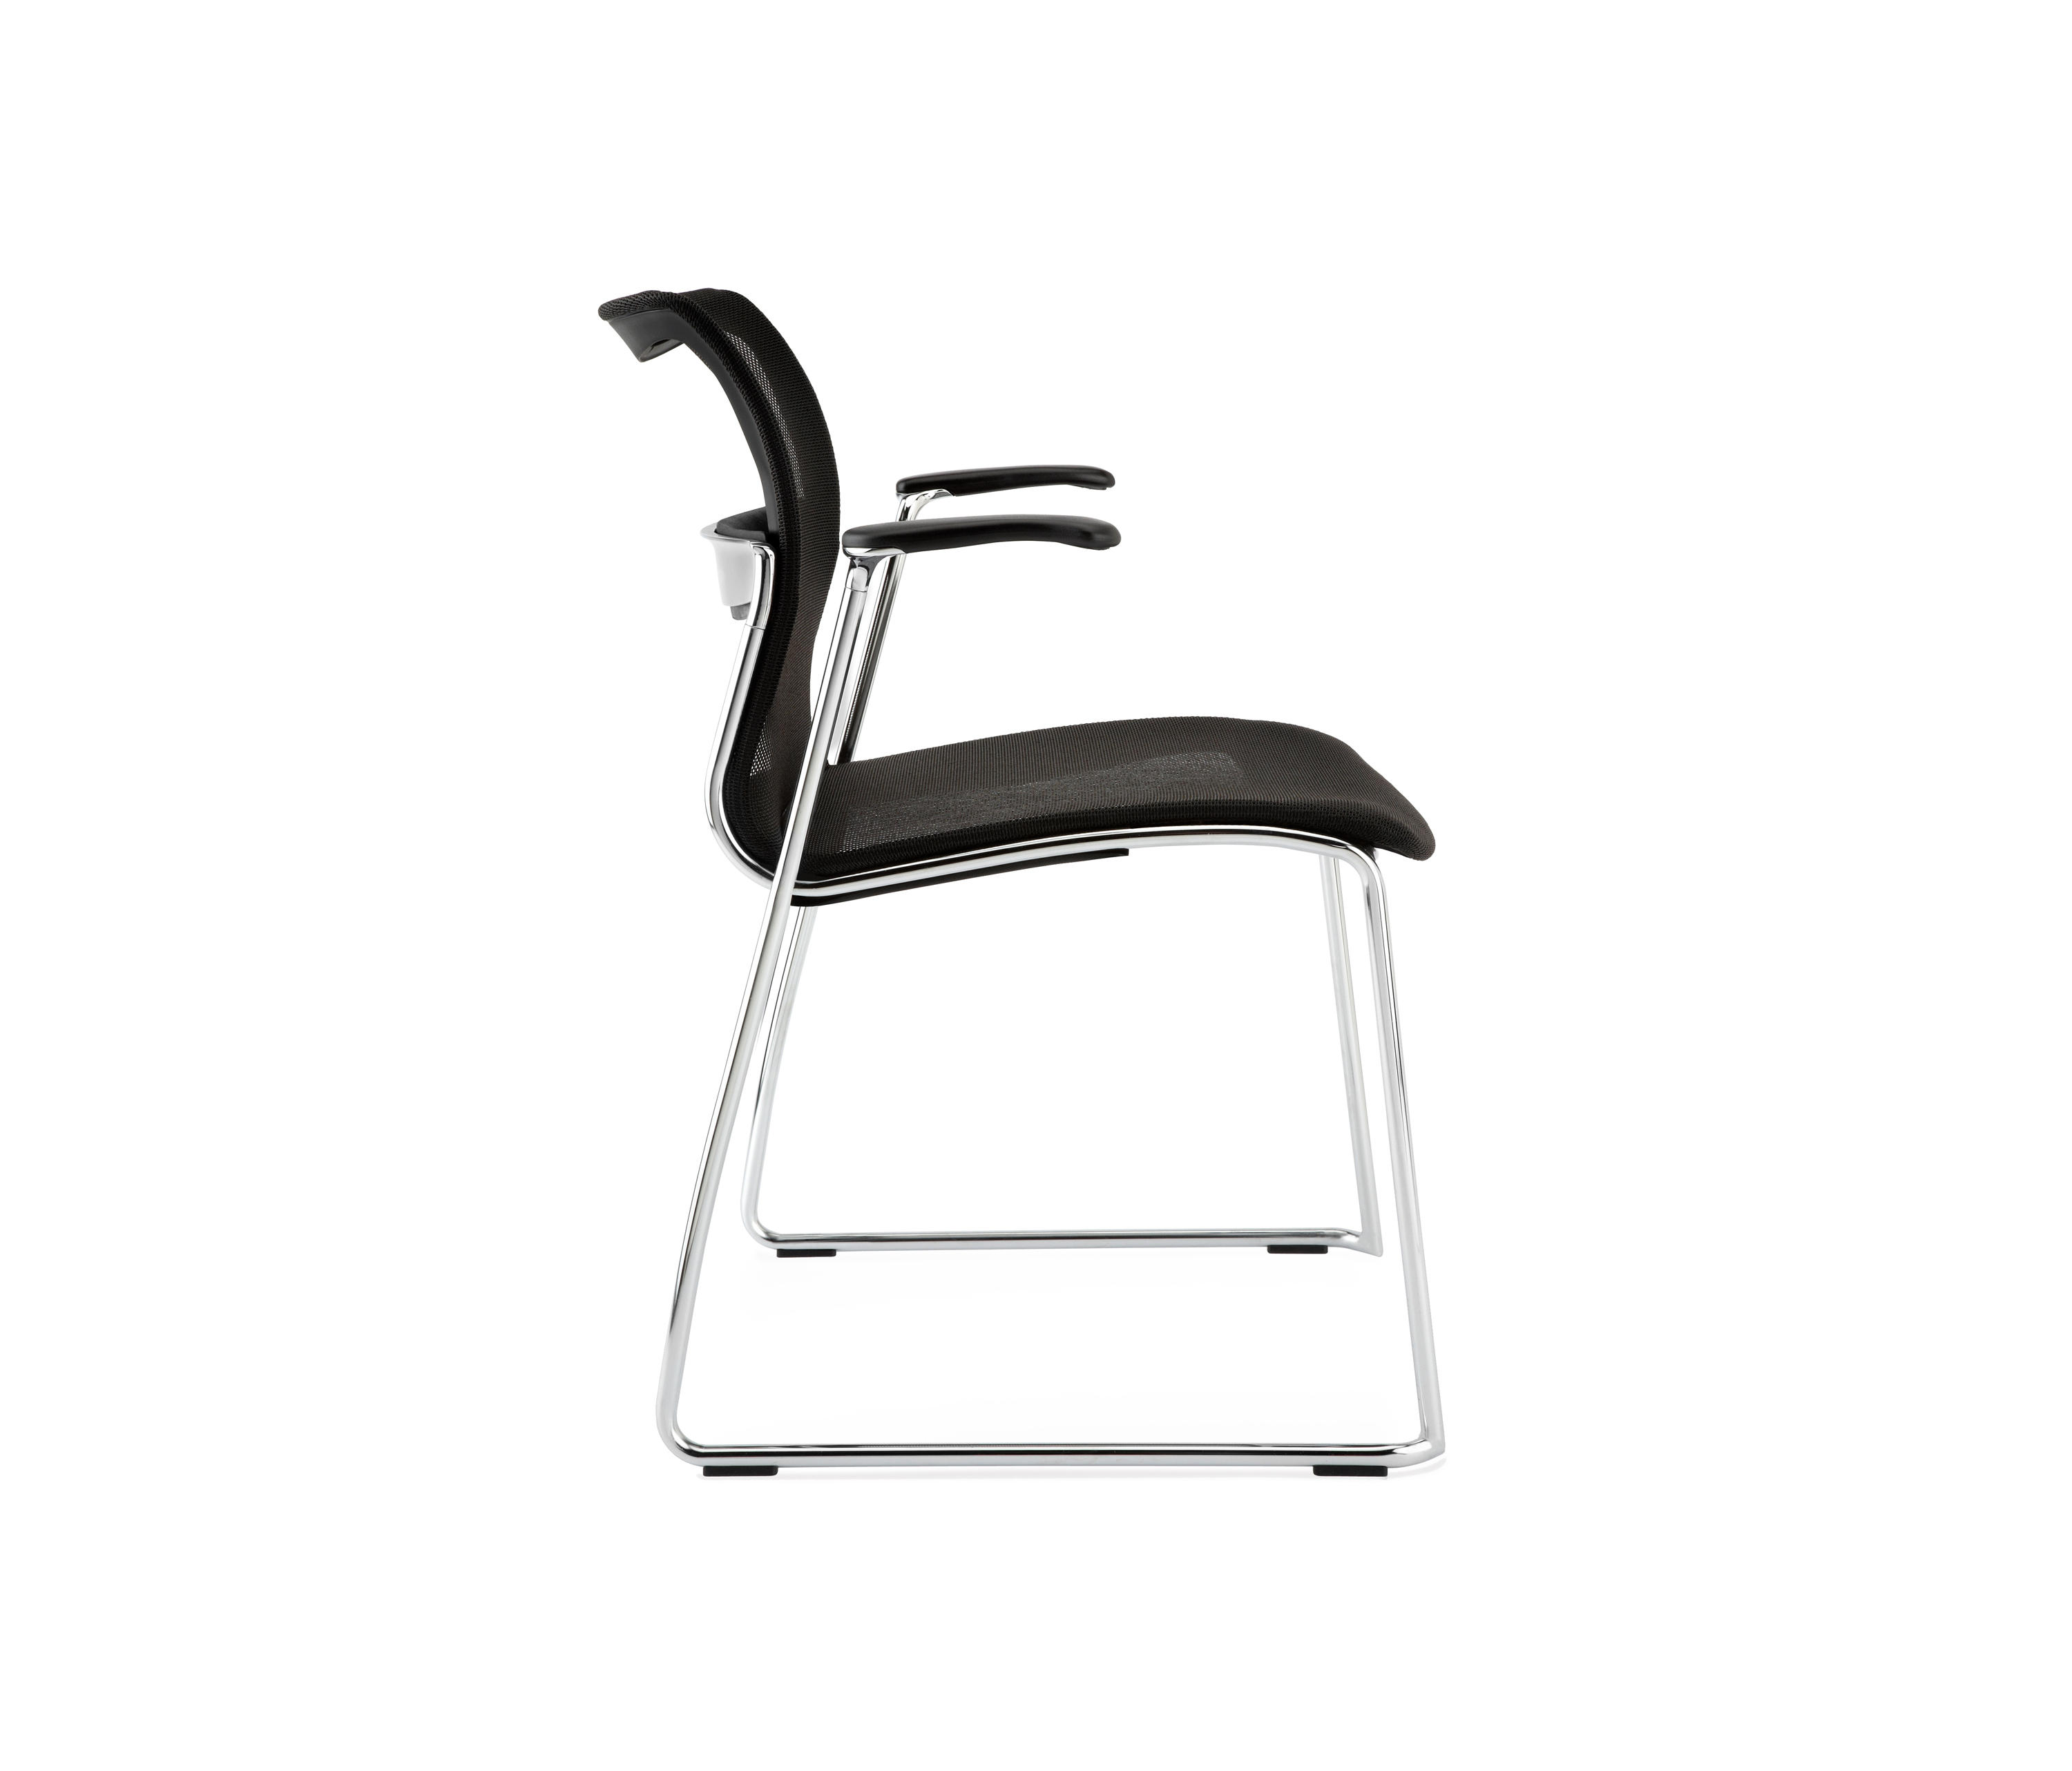 zephyr desk chair leg accessories visitors chairs side from stylex